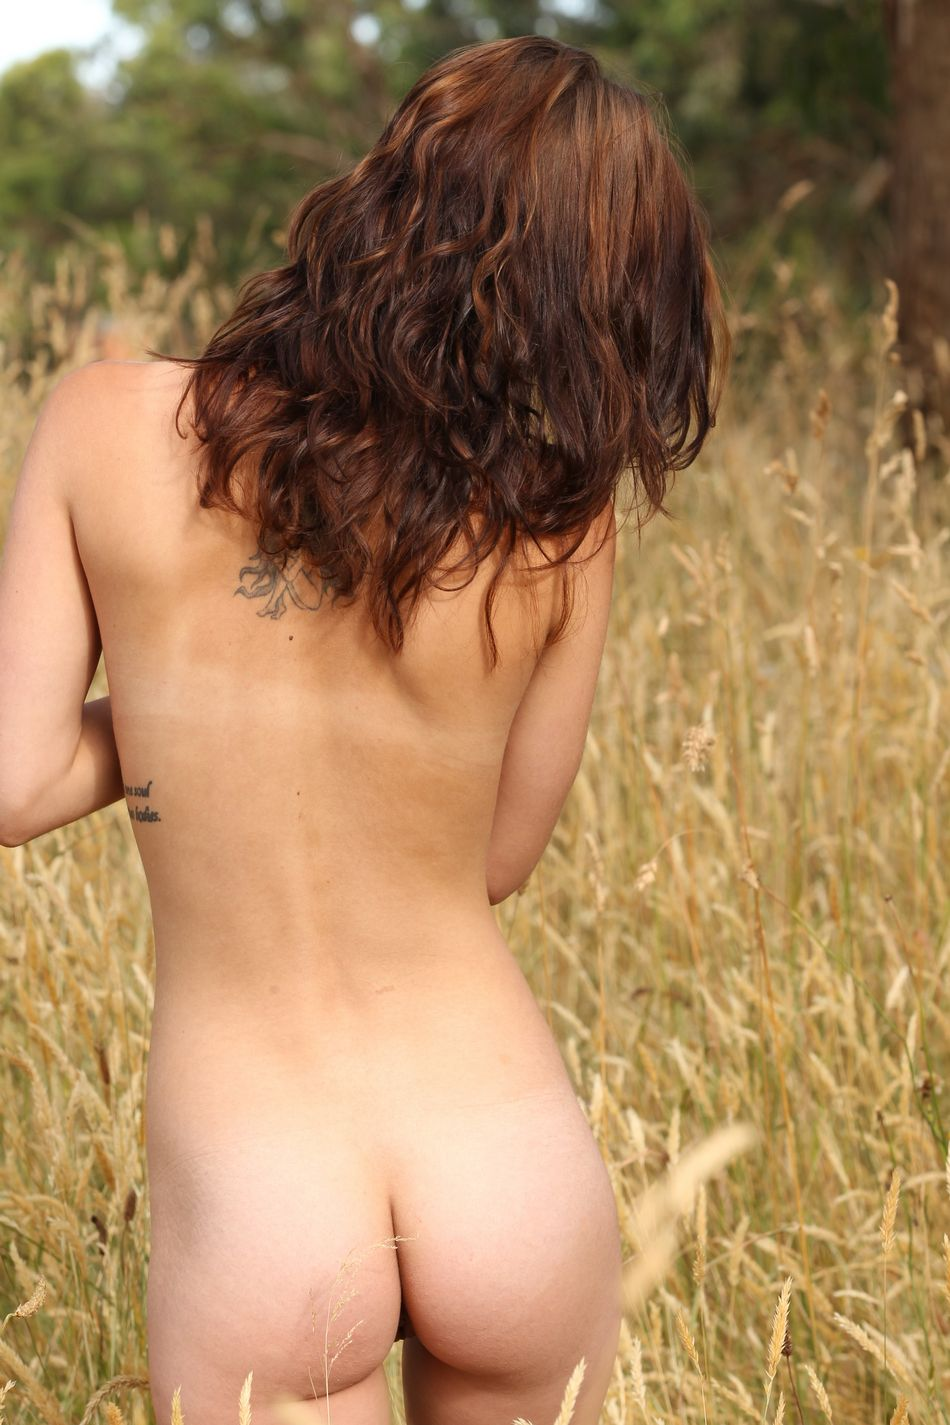 come and take a roll in the long grass totally naked as she fucks herself with a large sex toy-4